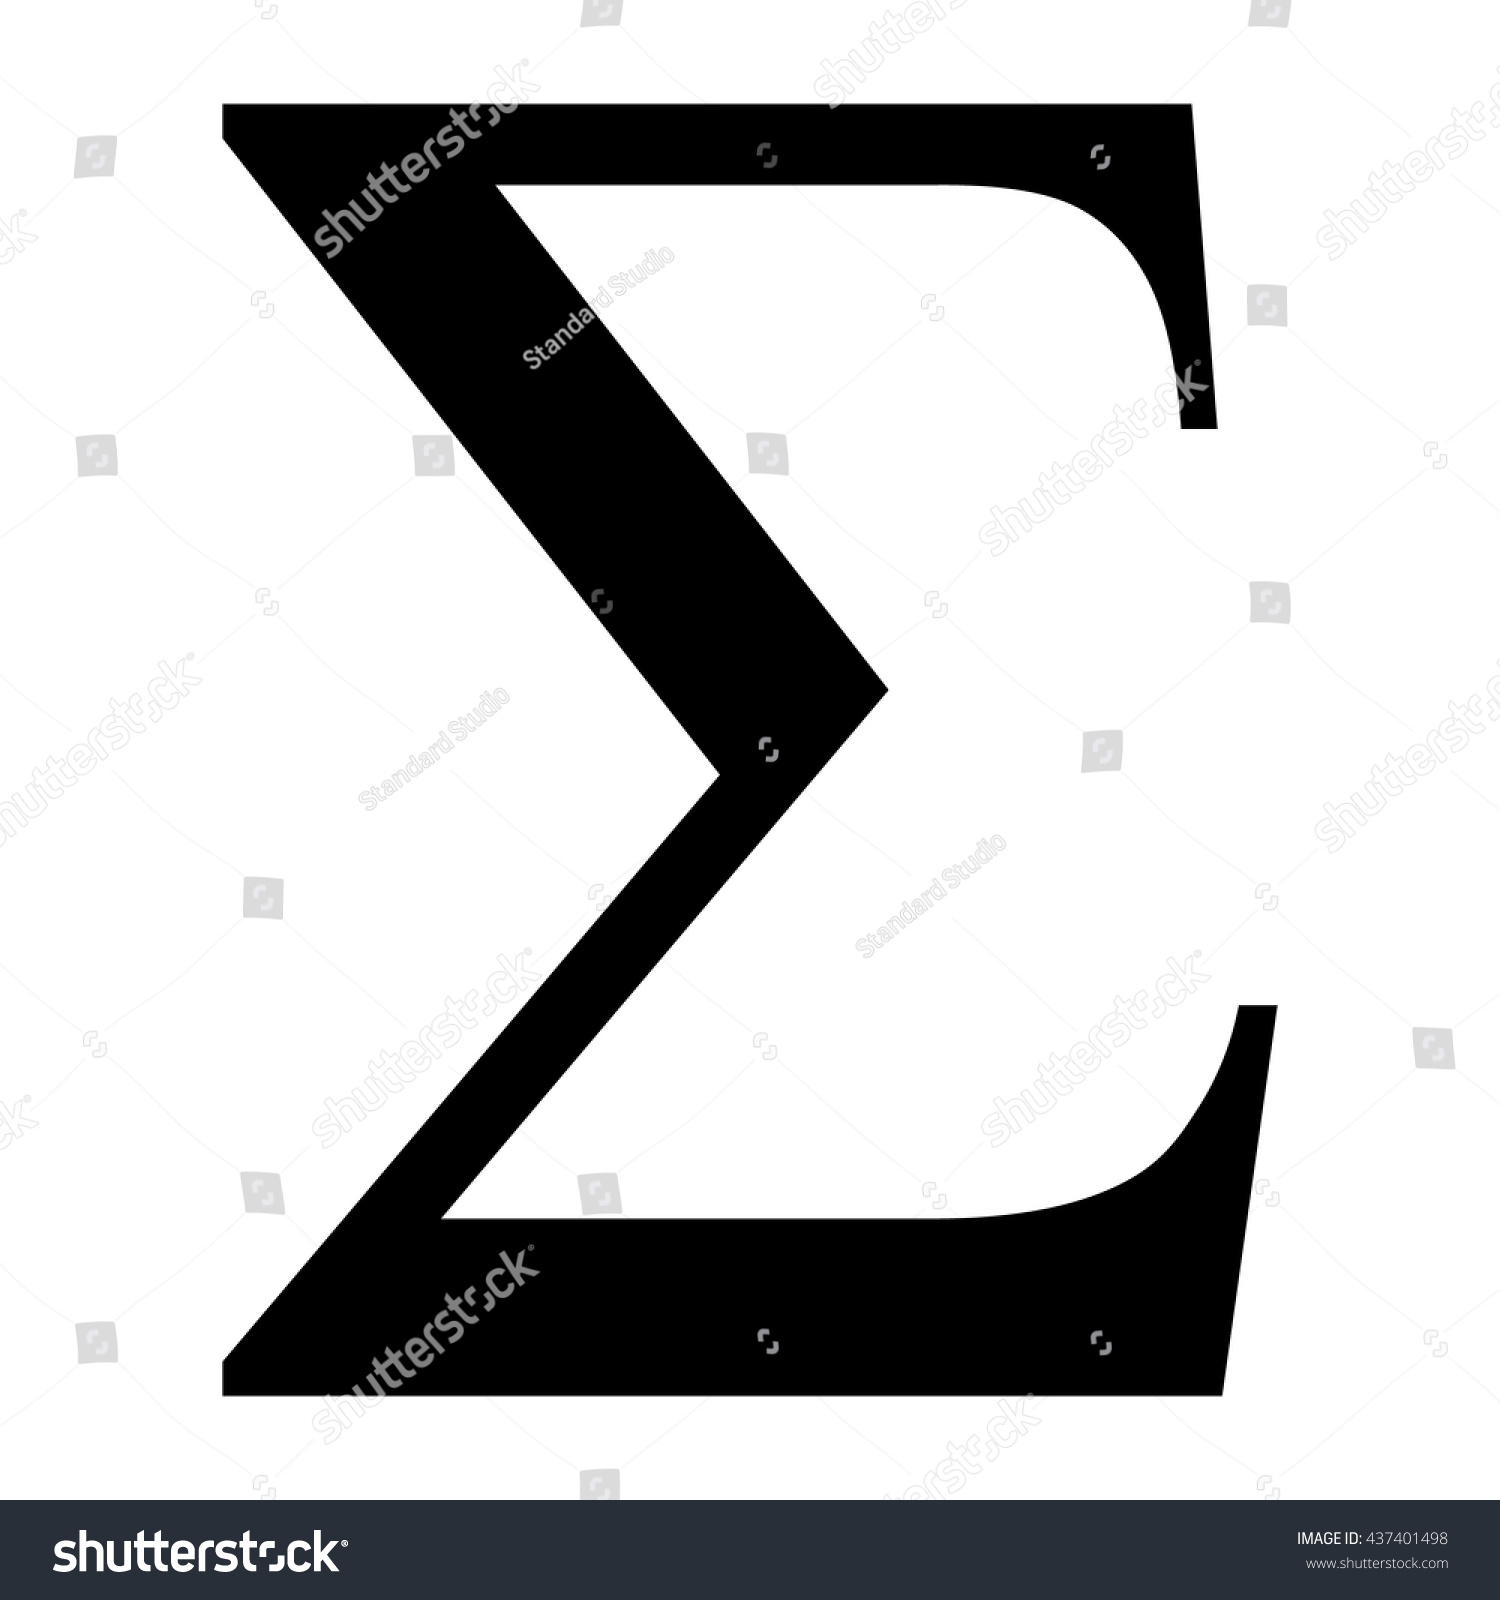 Sigma Greek Letter Icon Sigma Symbol Stock Vector Royalty Free